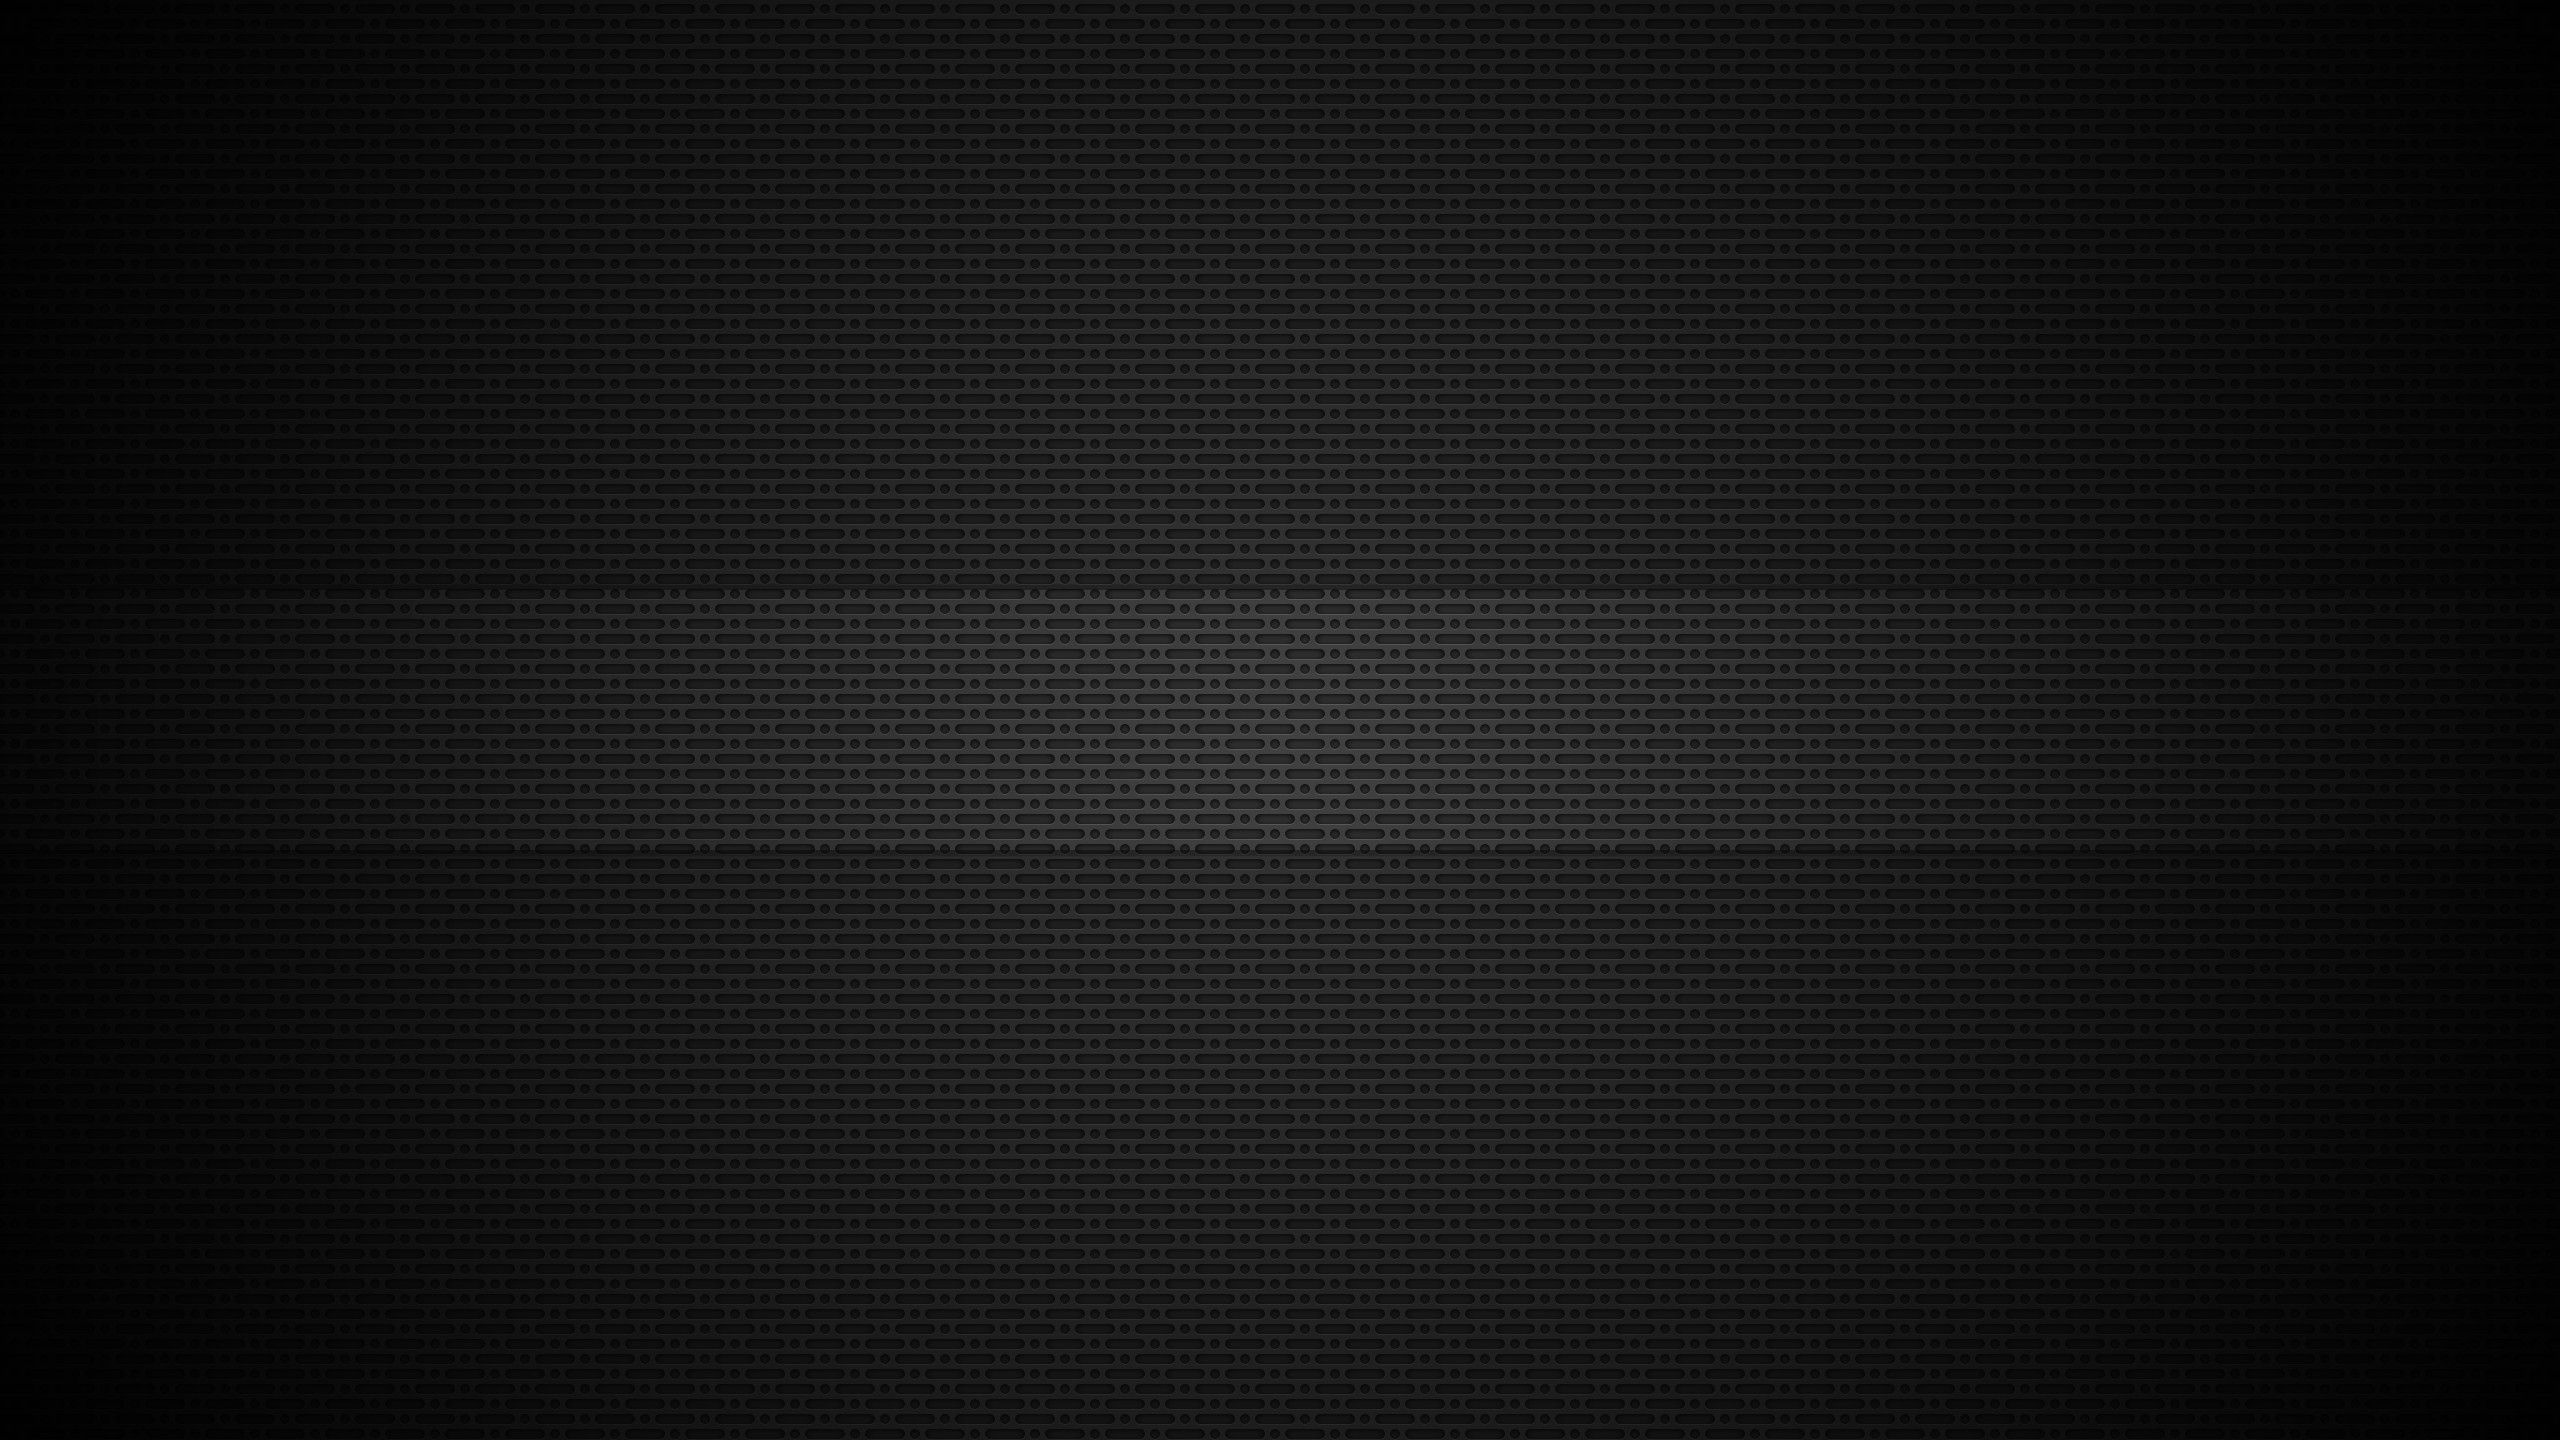 2560x1440 20 Free YouTube One Channel Art Designs